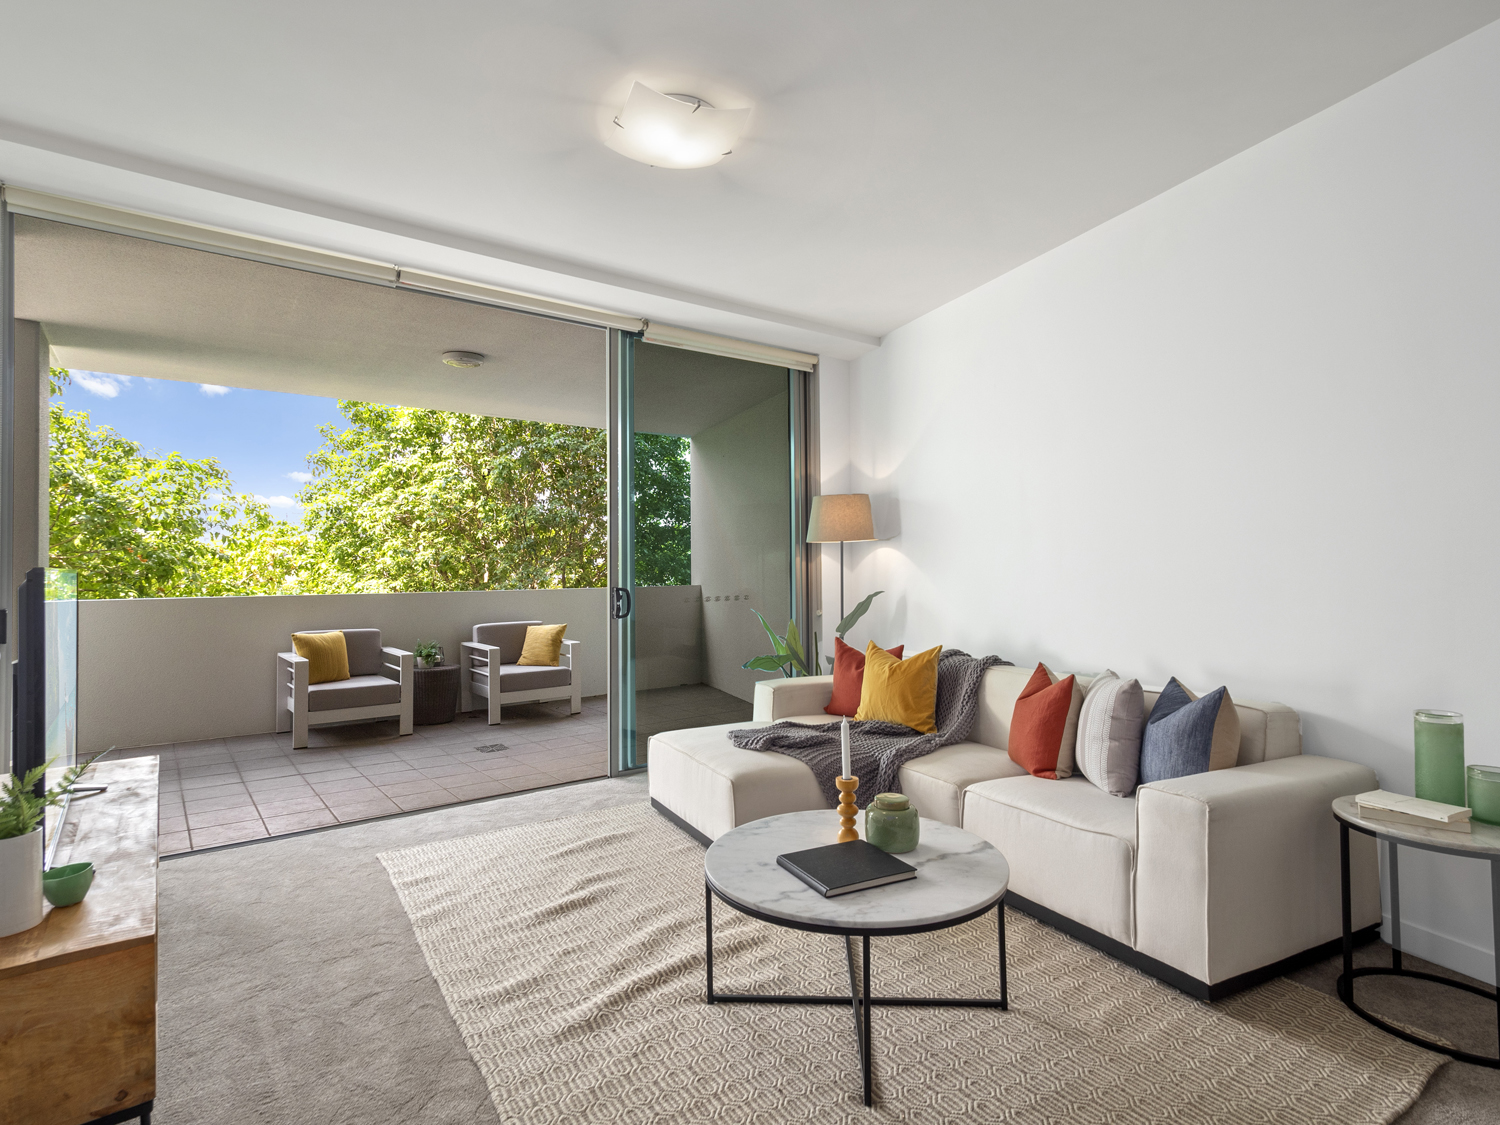 The lounge area - Photographing an apartment for sale at 92 Quay St South Brisbane